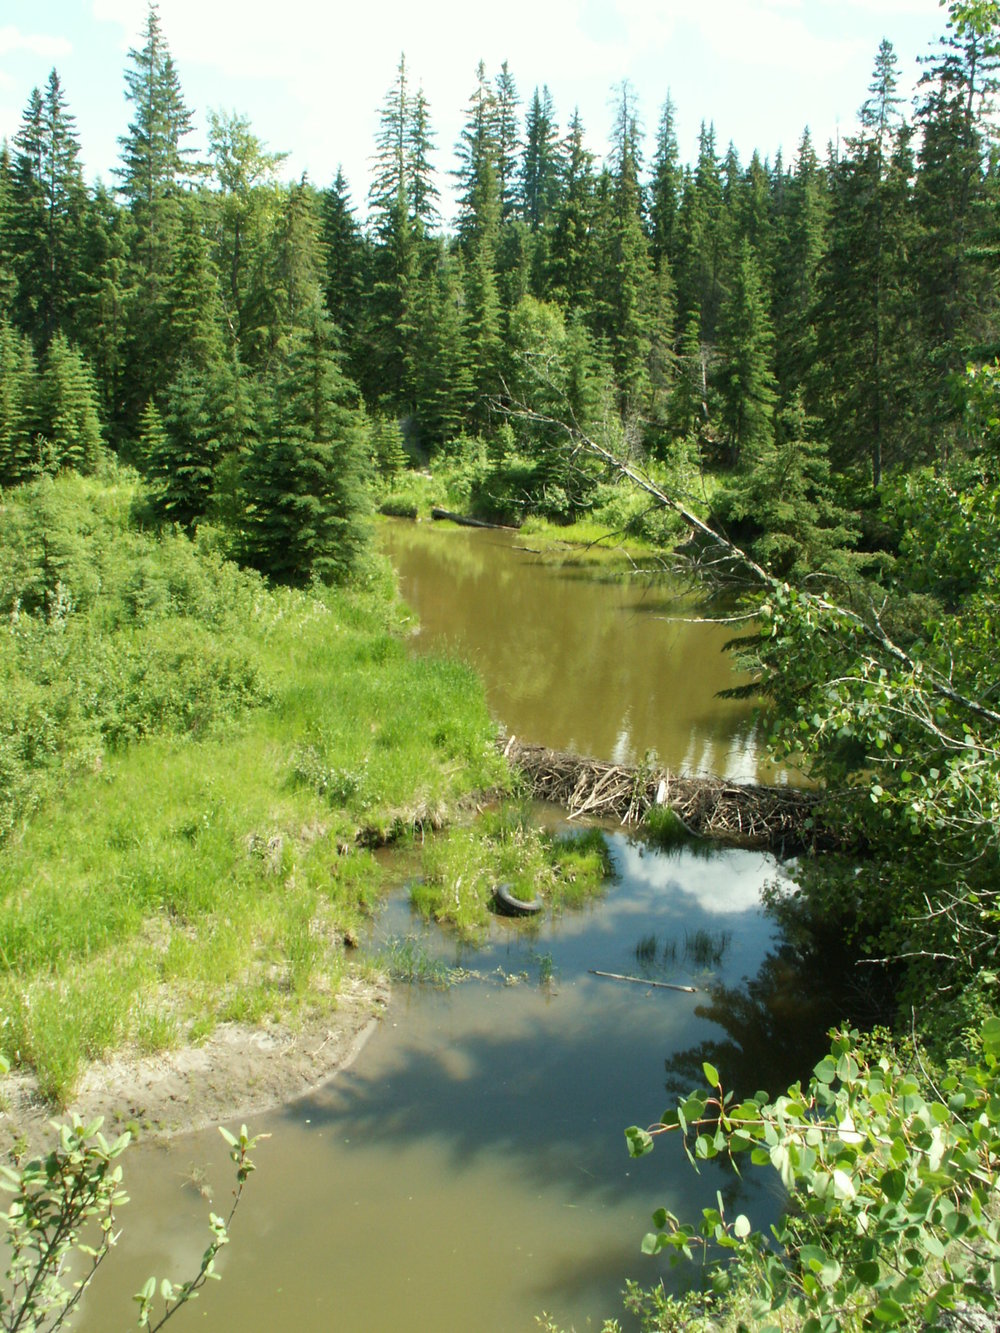 whitemud crk near larch lands.JPG